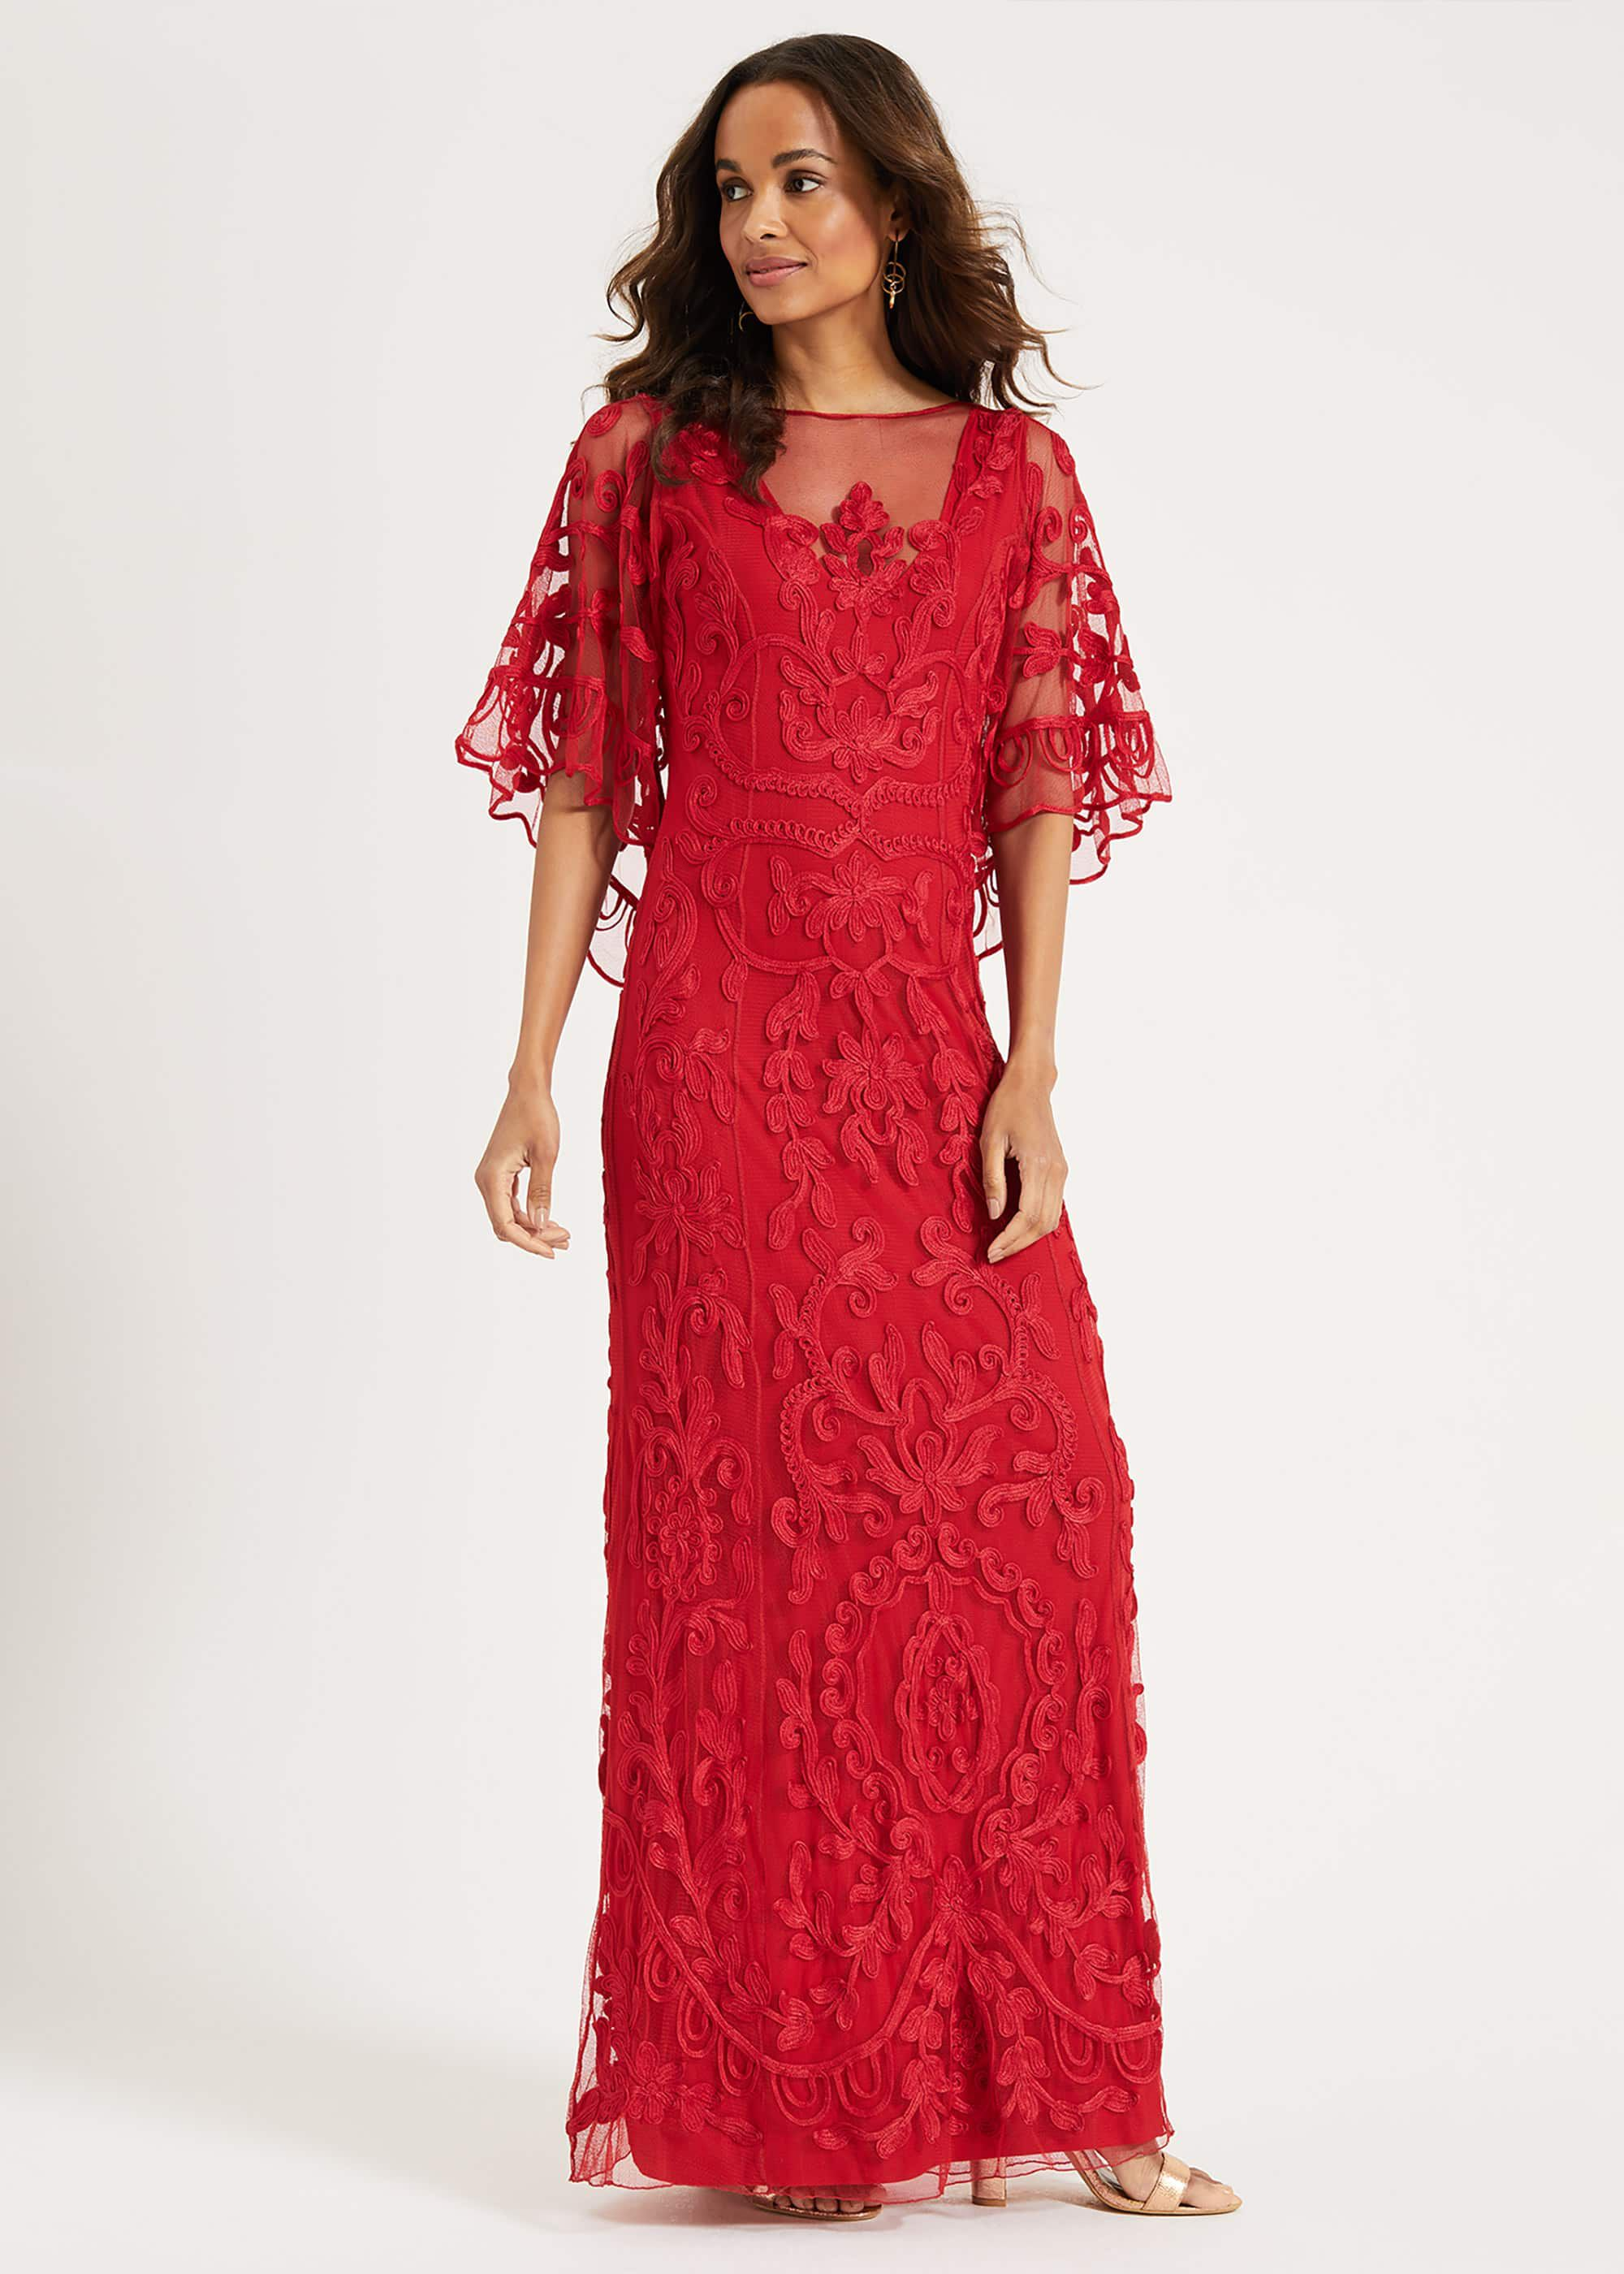 Phase Eight Aviana Tapework Maxi Dress, Red, Maxi